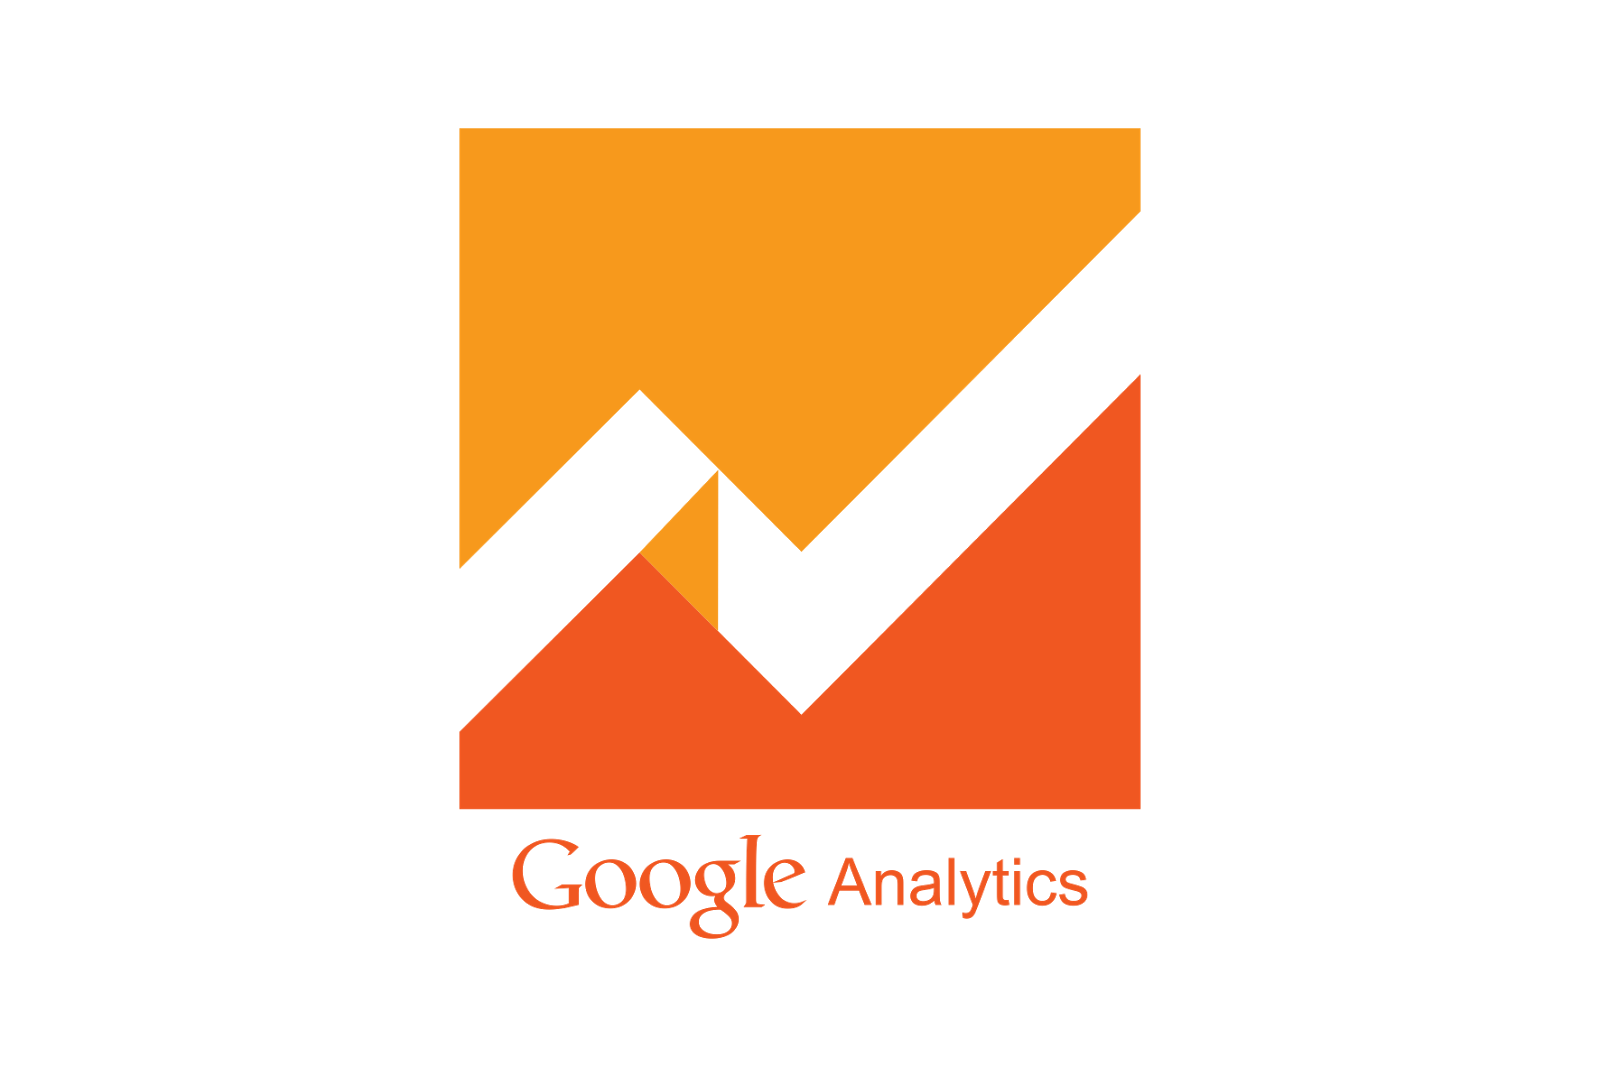 Fix your hotel s. Google analytics png